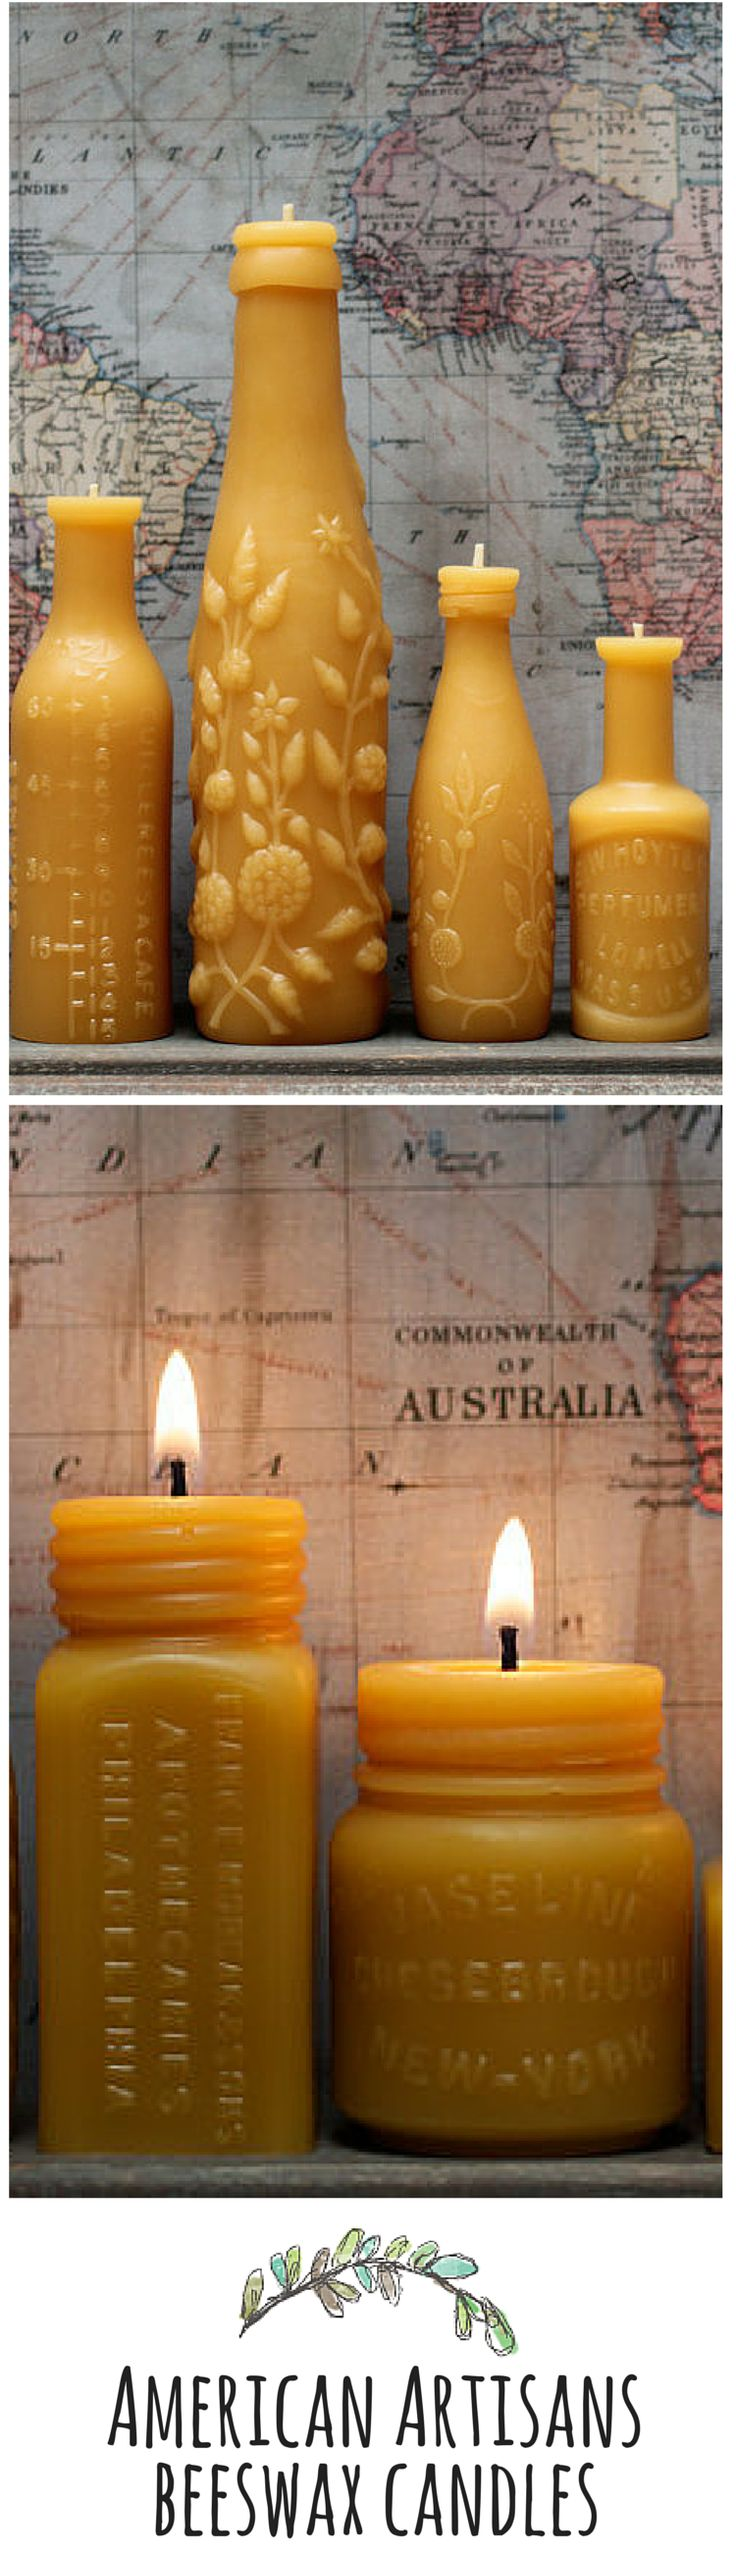 Gorgeous handmade beeswax candles molded in the shape of antique bottles from PollenArts!